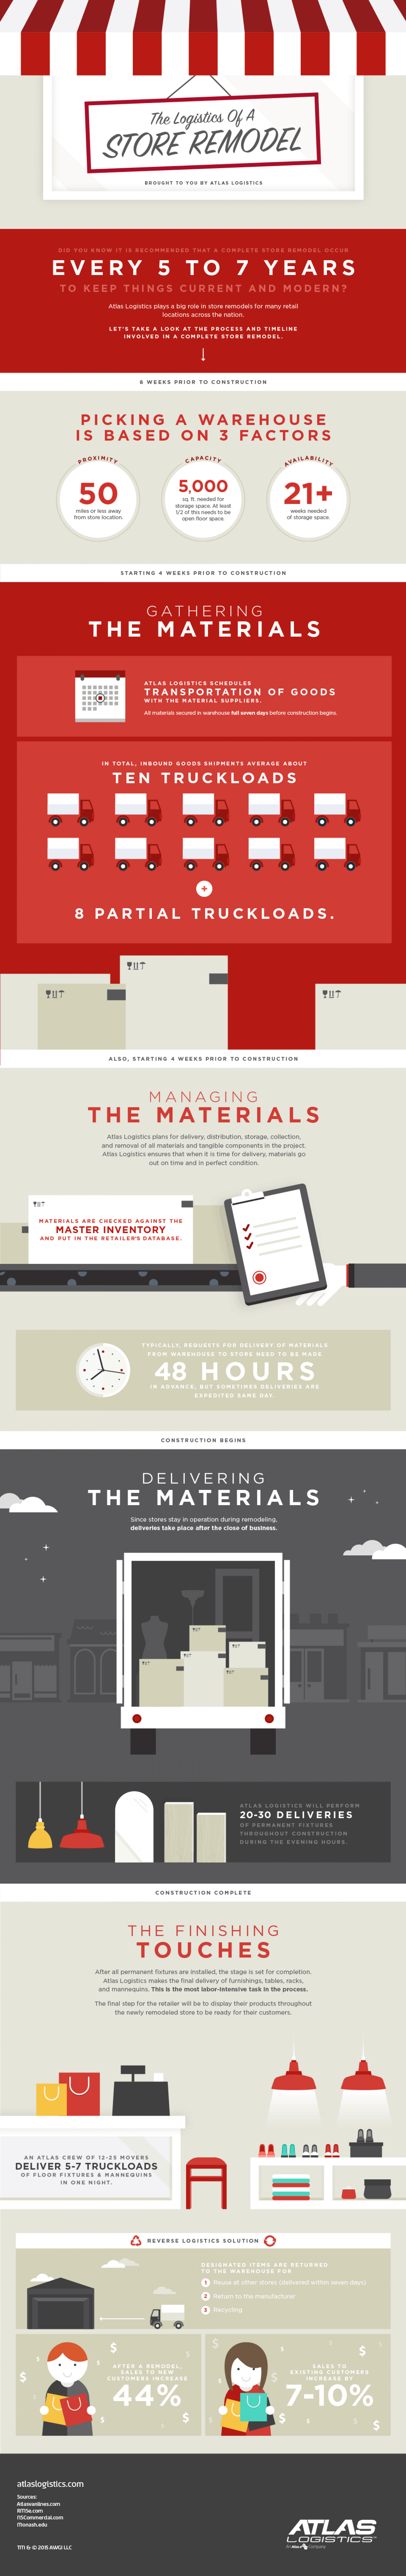 The Logistics of a Store Remodel Infographic